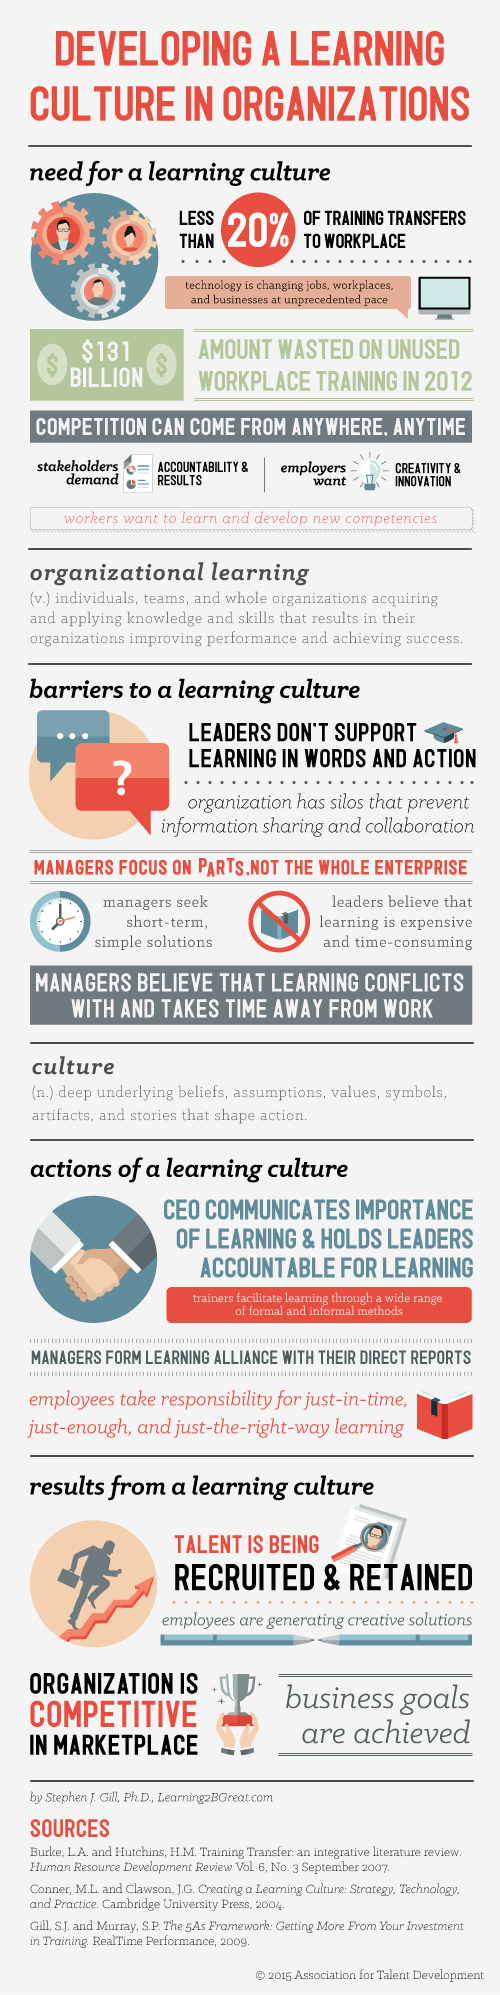 Developing a Learning Culture in Organisations | Leadership Hub